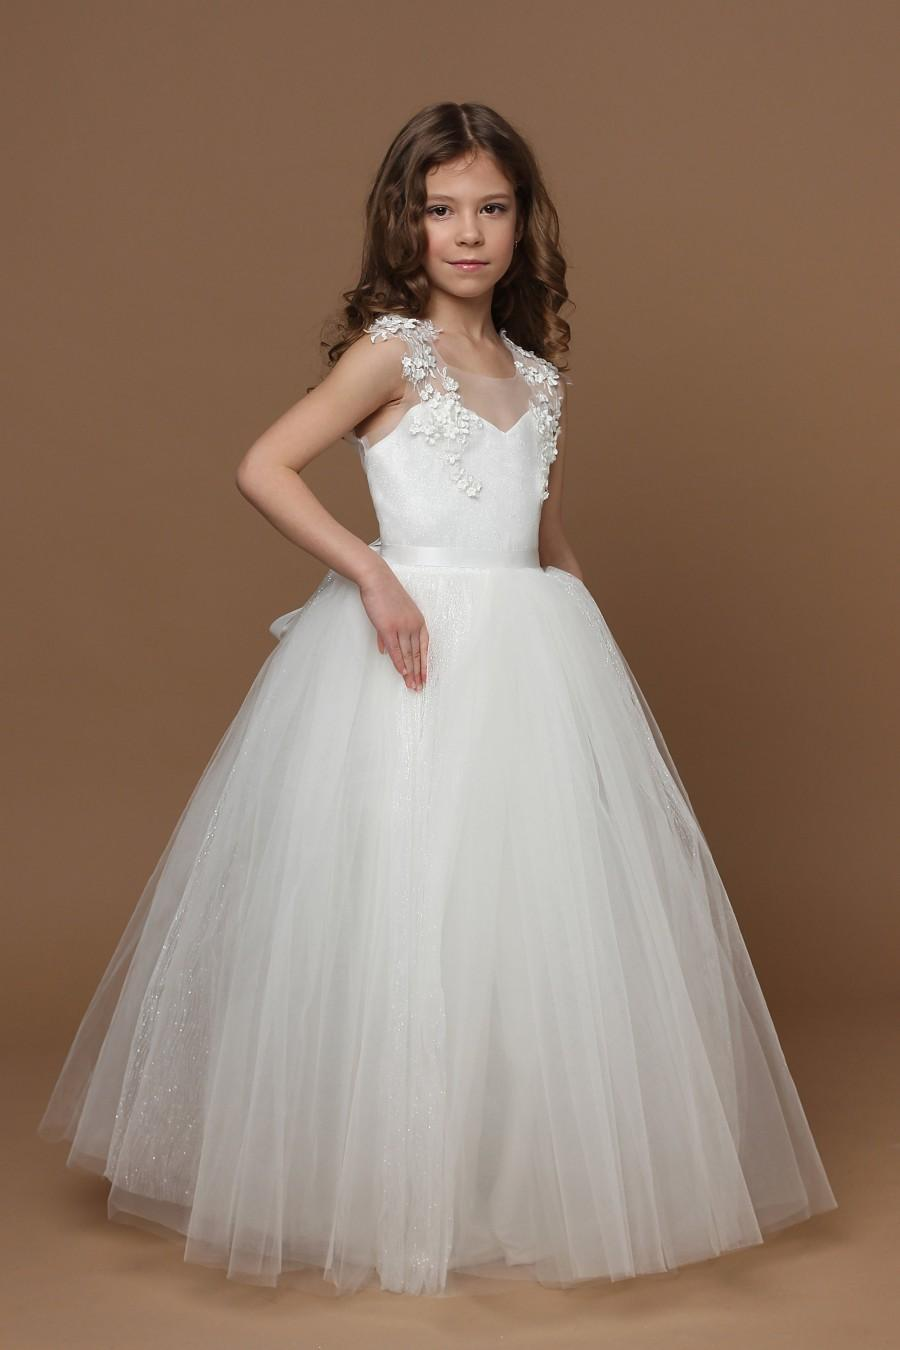 Wedding - Tulle Flower Girl Dress 1st Communion Dress Princess Dress Birthday Girl Dress  Ivory Flower Girl Dress Lace Flower Girl Dress Baby Dress